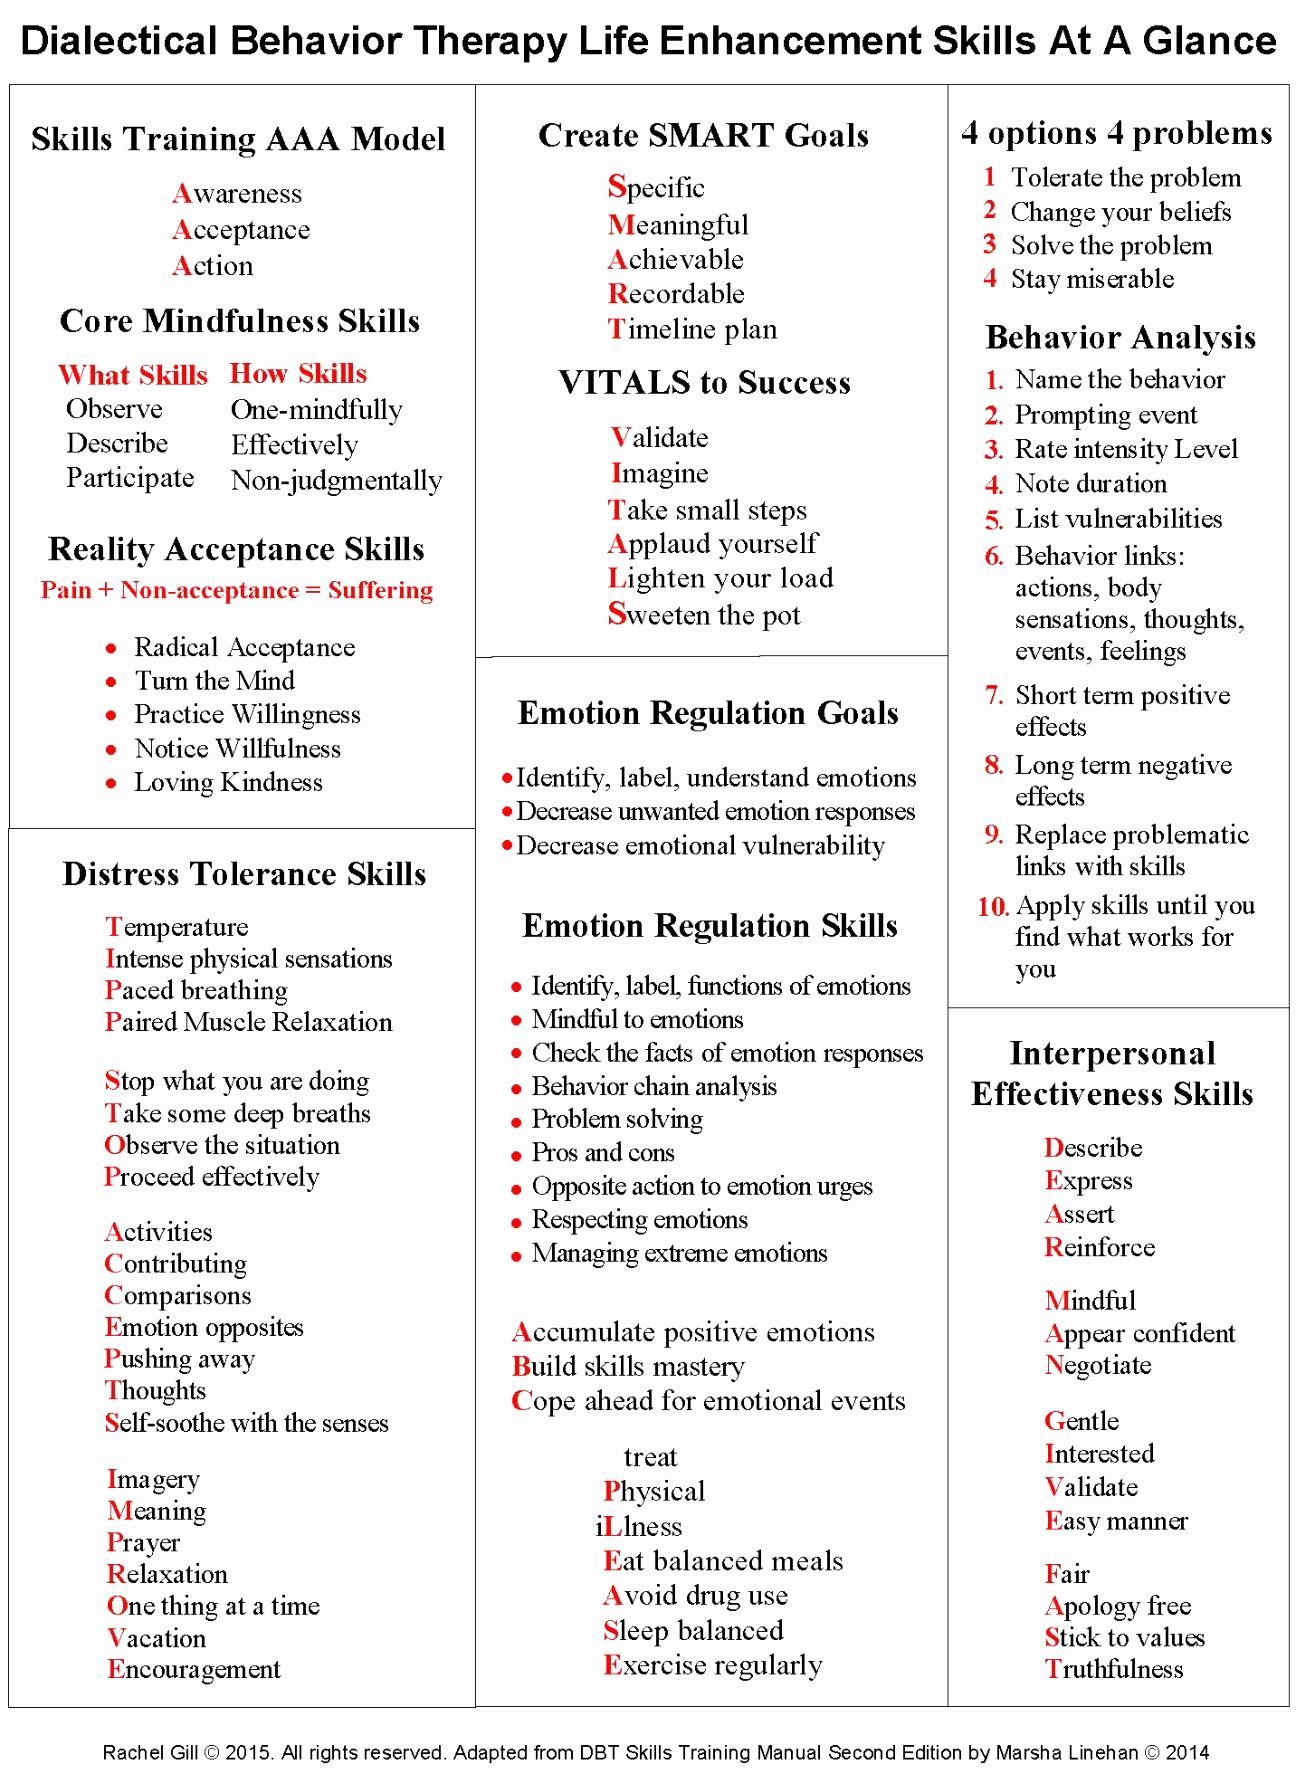 Stages Of Change Substance Abuse Worksheet